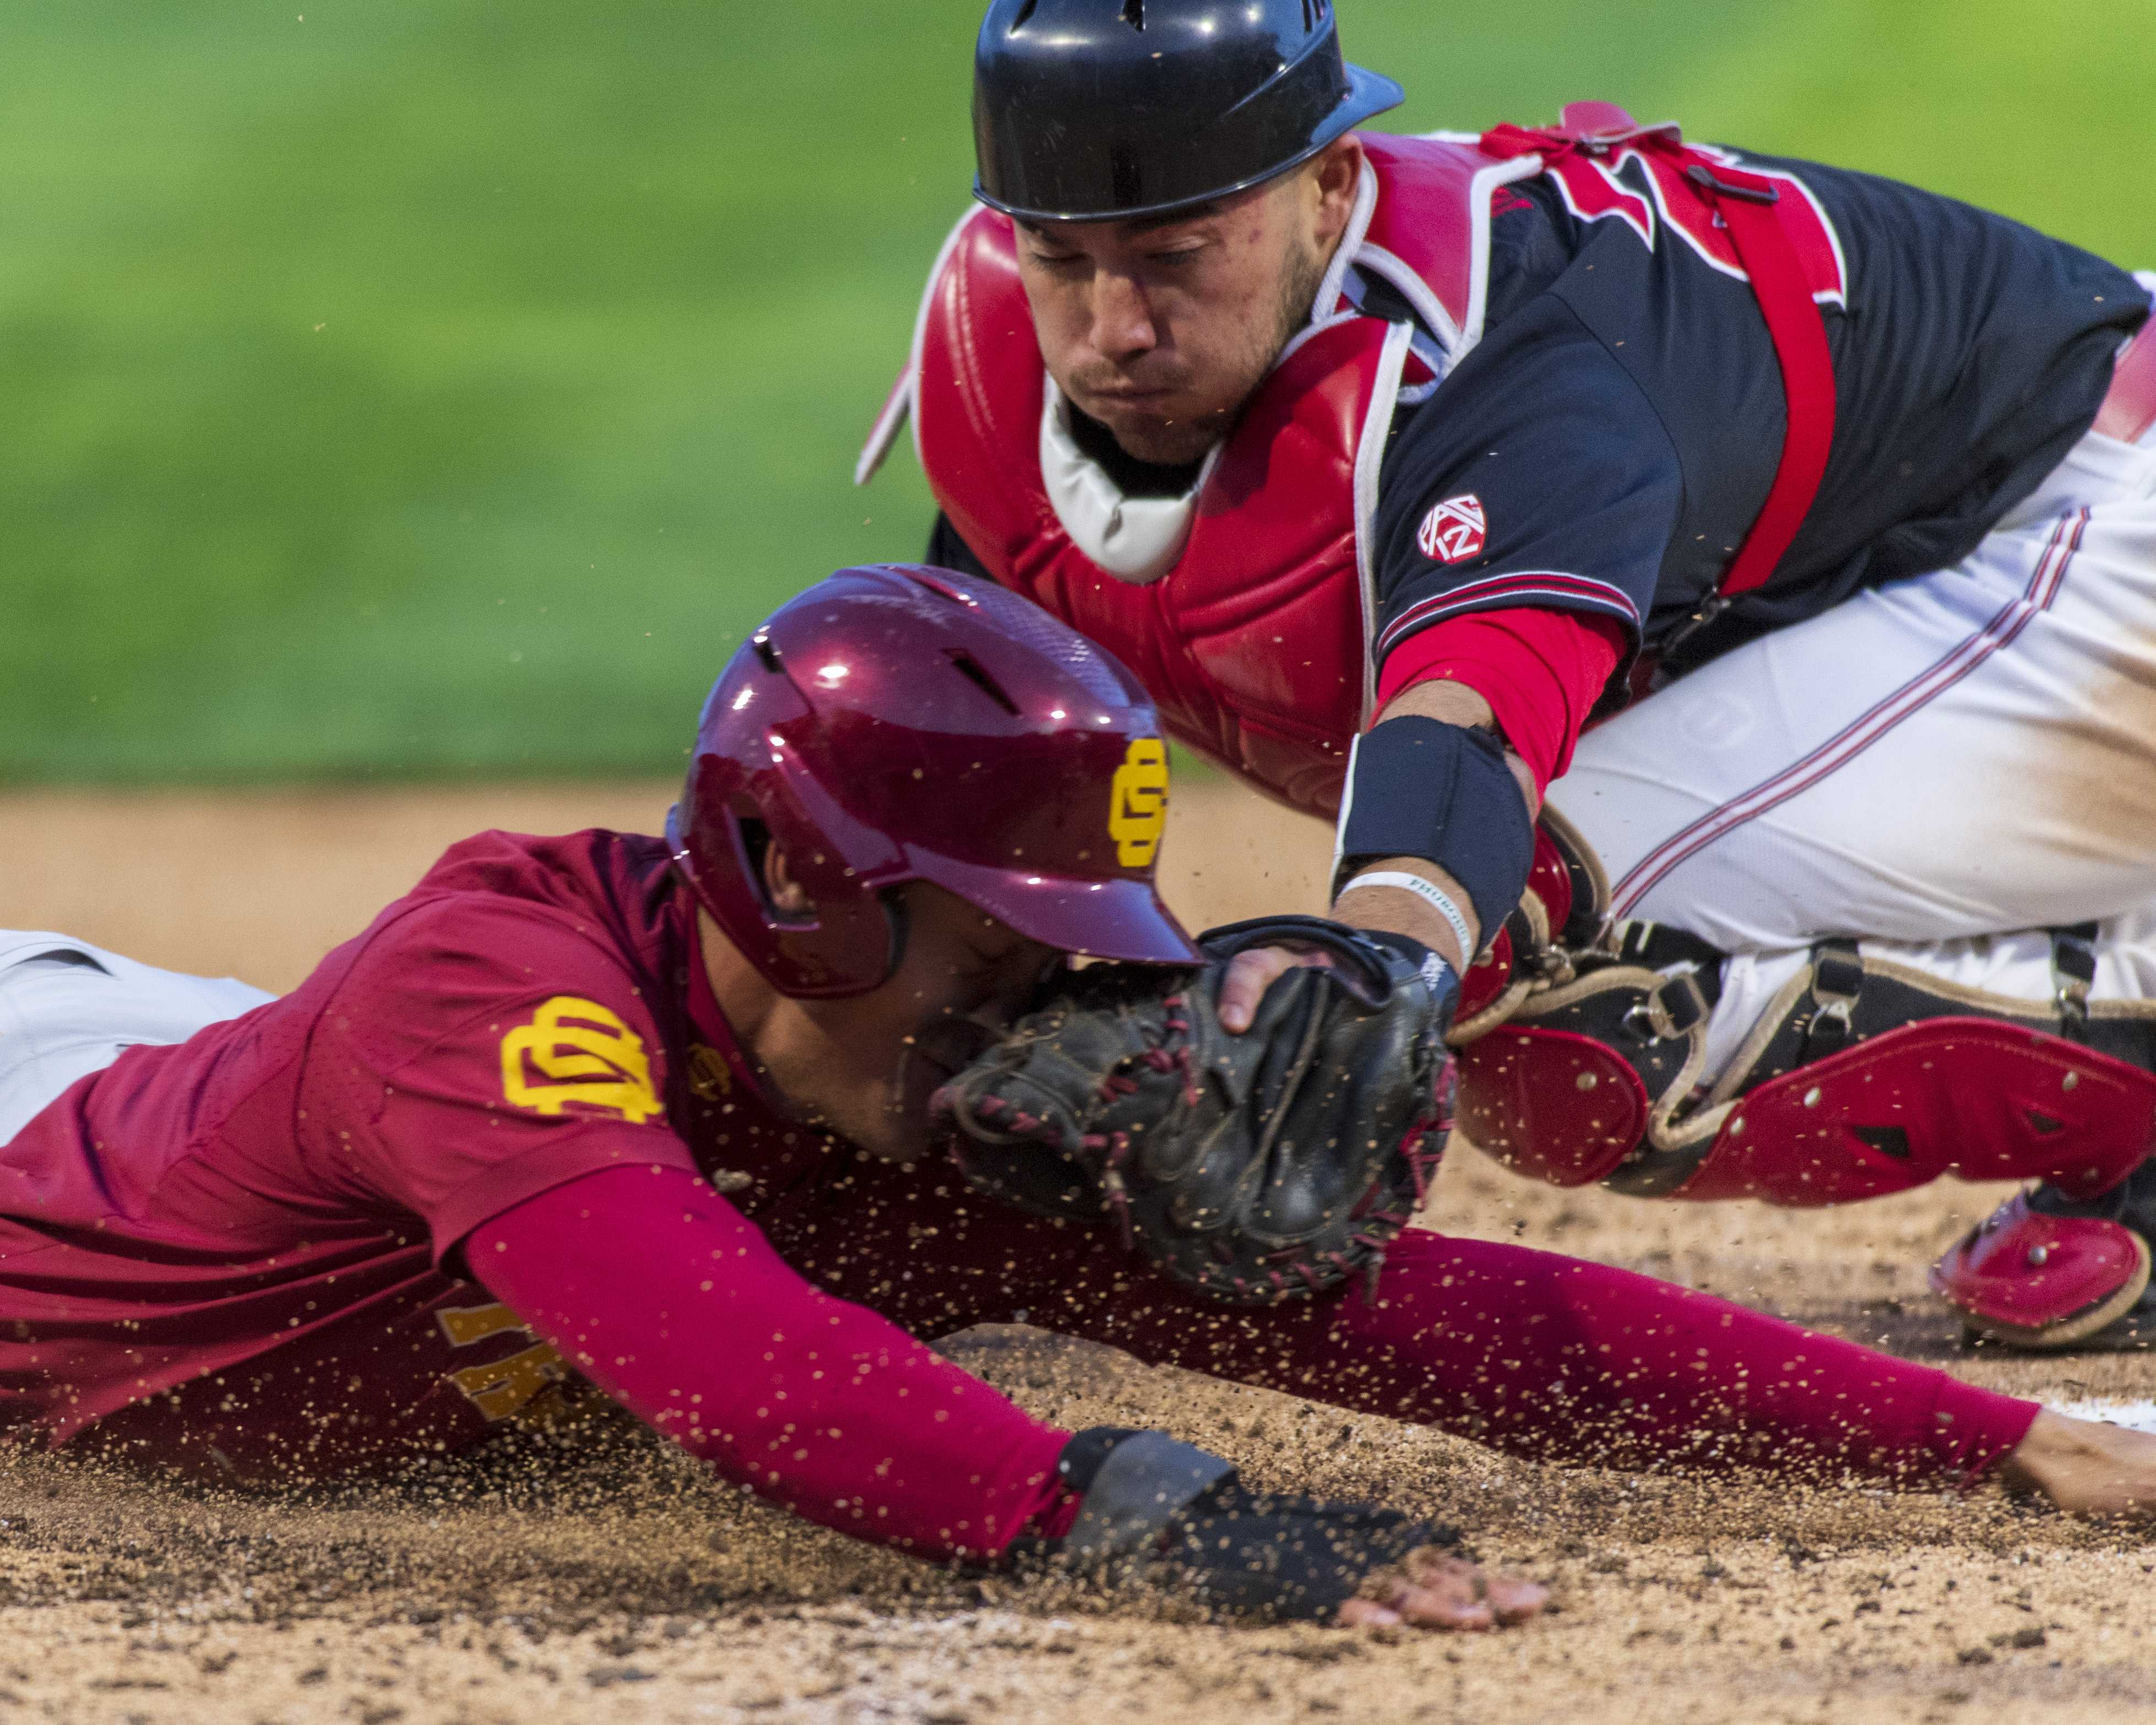 University of Southern California senior infielder Chase Bushor (15) gets tagged out by University of Utah redshirt junior catcher Zack Moeller (28) after a 9-4-2 during an NCAA Baseball game at the Smith's Ballpark in Salt Lake City, Utah on Thursday, April 11, 2019. (Photo by Kiffer Creveling | The Daily Utah Chronicle)